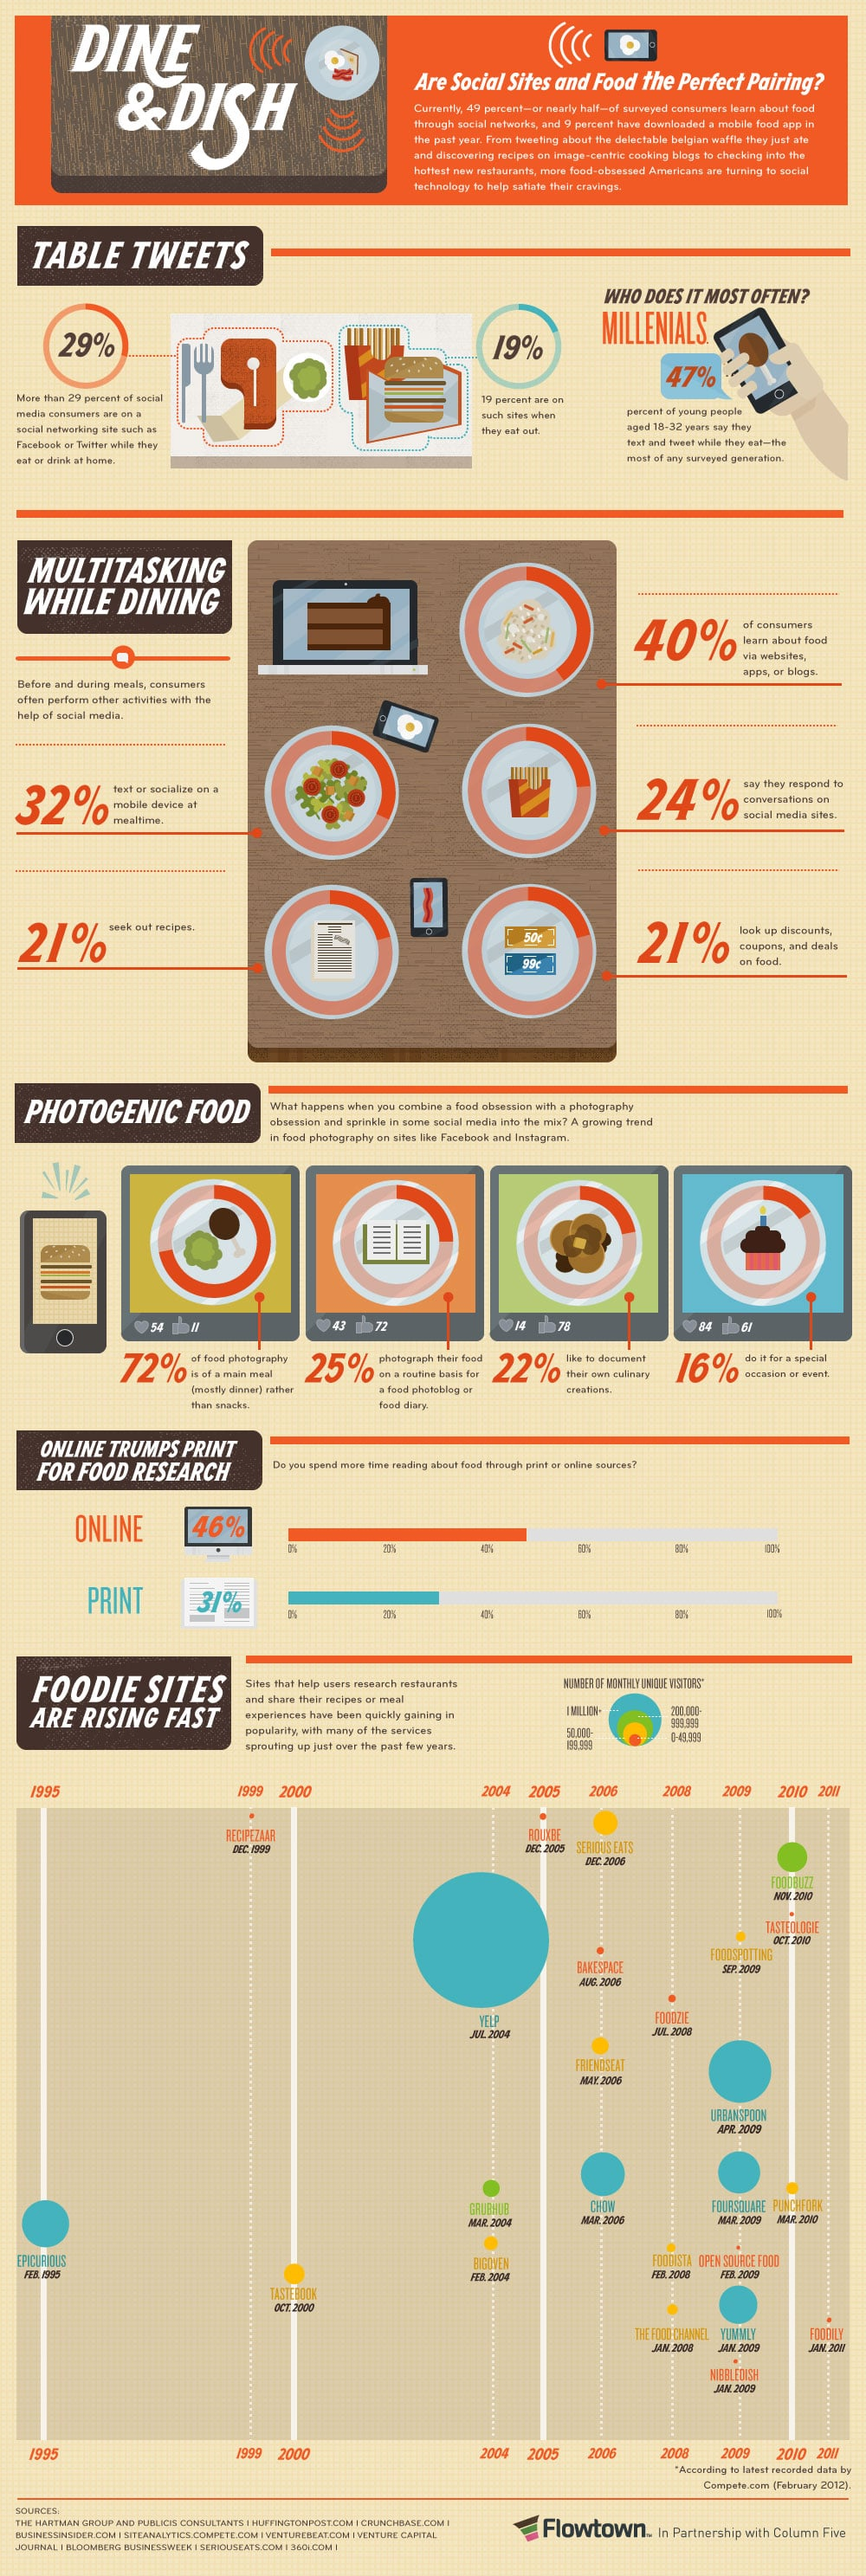 Flowtown-Dine-and-Dish-Infographic